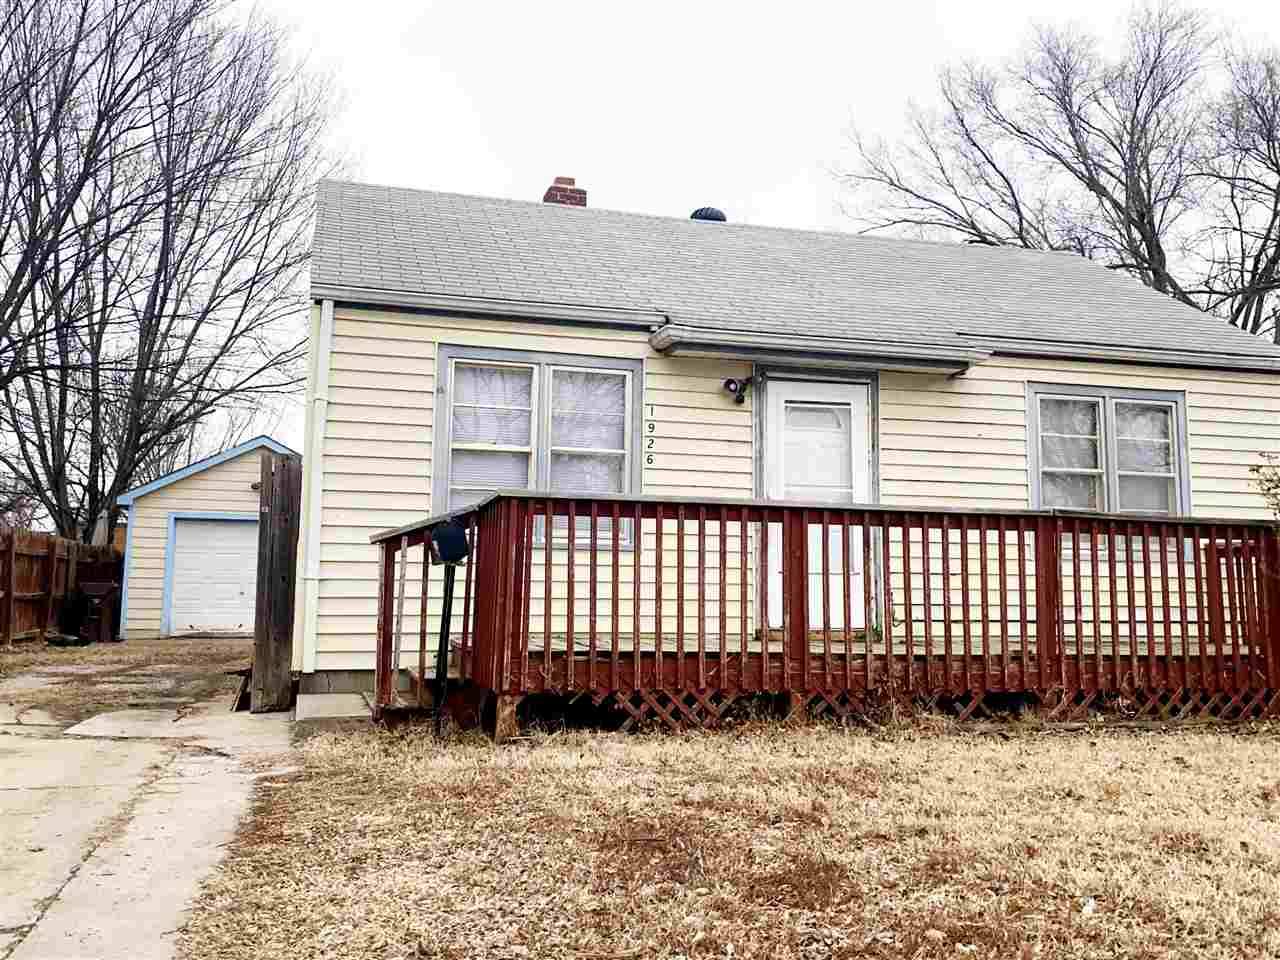 Great investment property or fixer upper with tons of potential.  This home sits on a nice sized lot